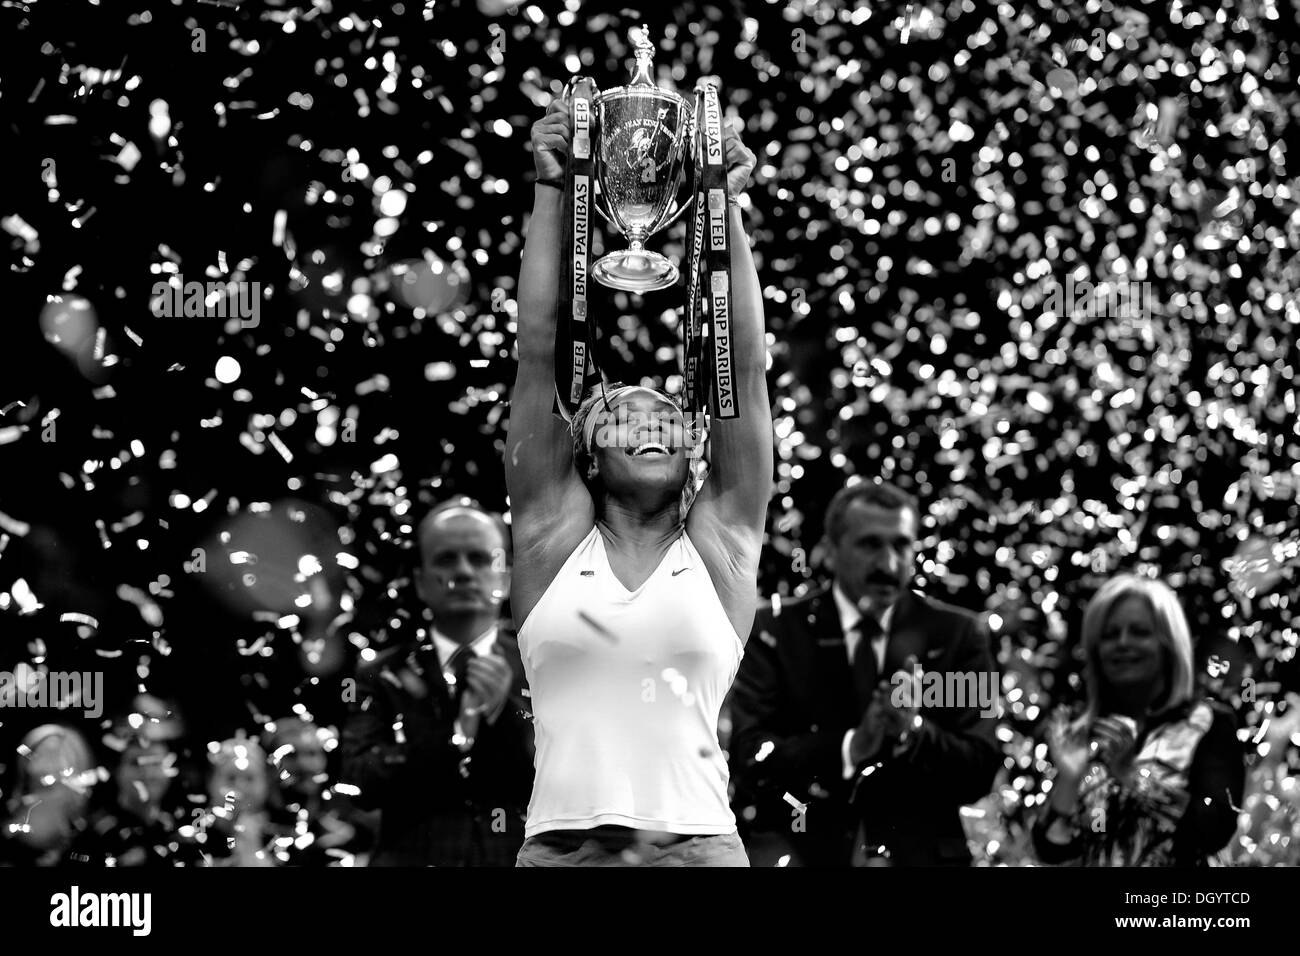 Istanbul, Turkey. 27th Oct, 2013. Serena Williams (USA) celebrates her win against Na Li (CHN) in the final of the WTA BNP Paribas Istanbul Open. Credit:  Action Plus Sports/Alamy Live News - Stock Image